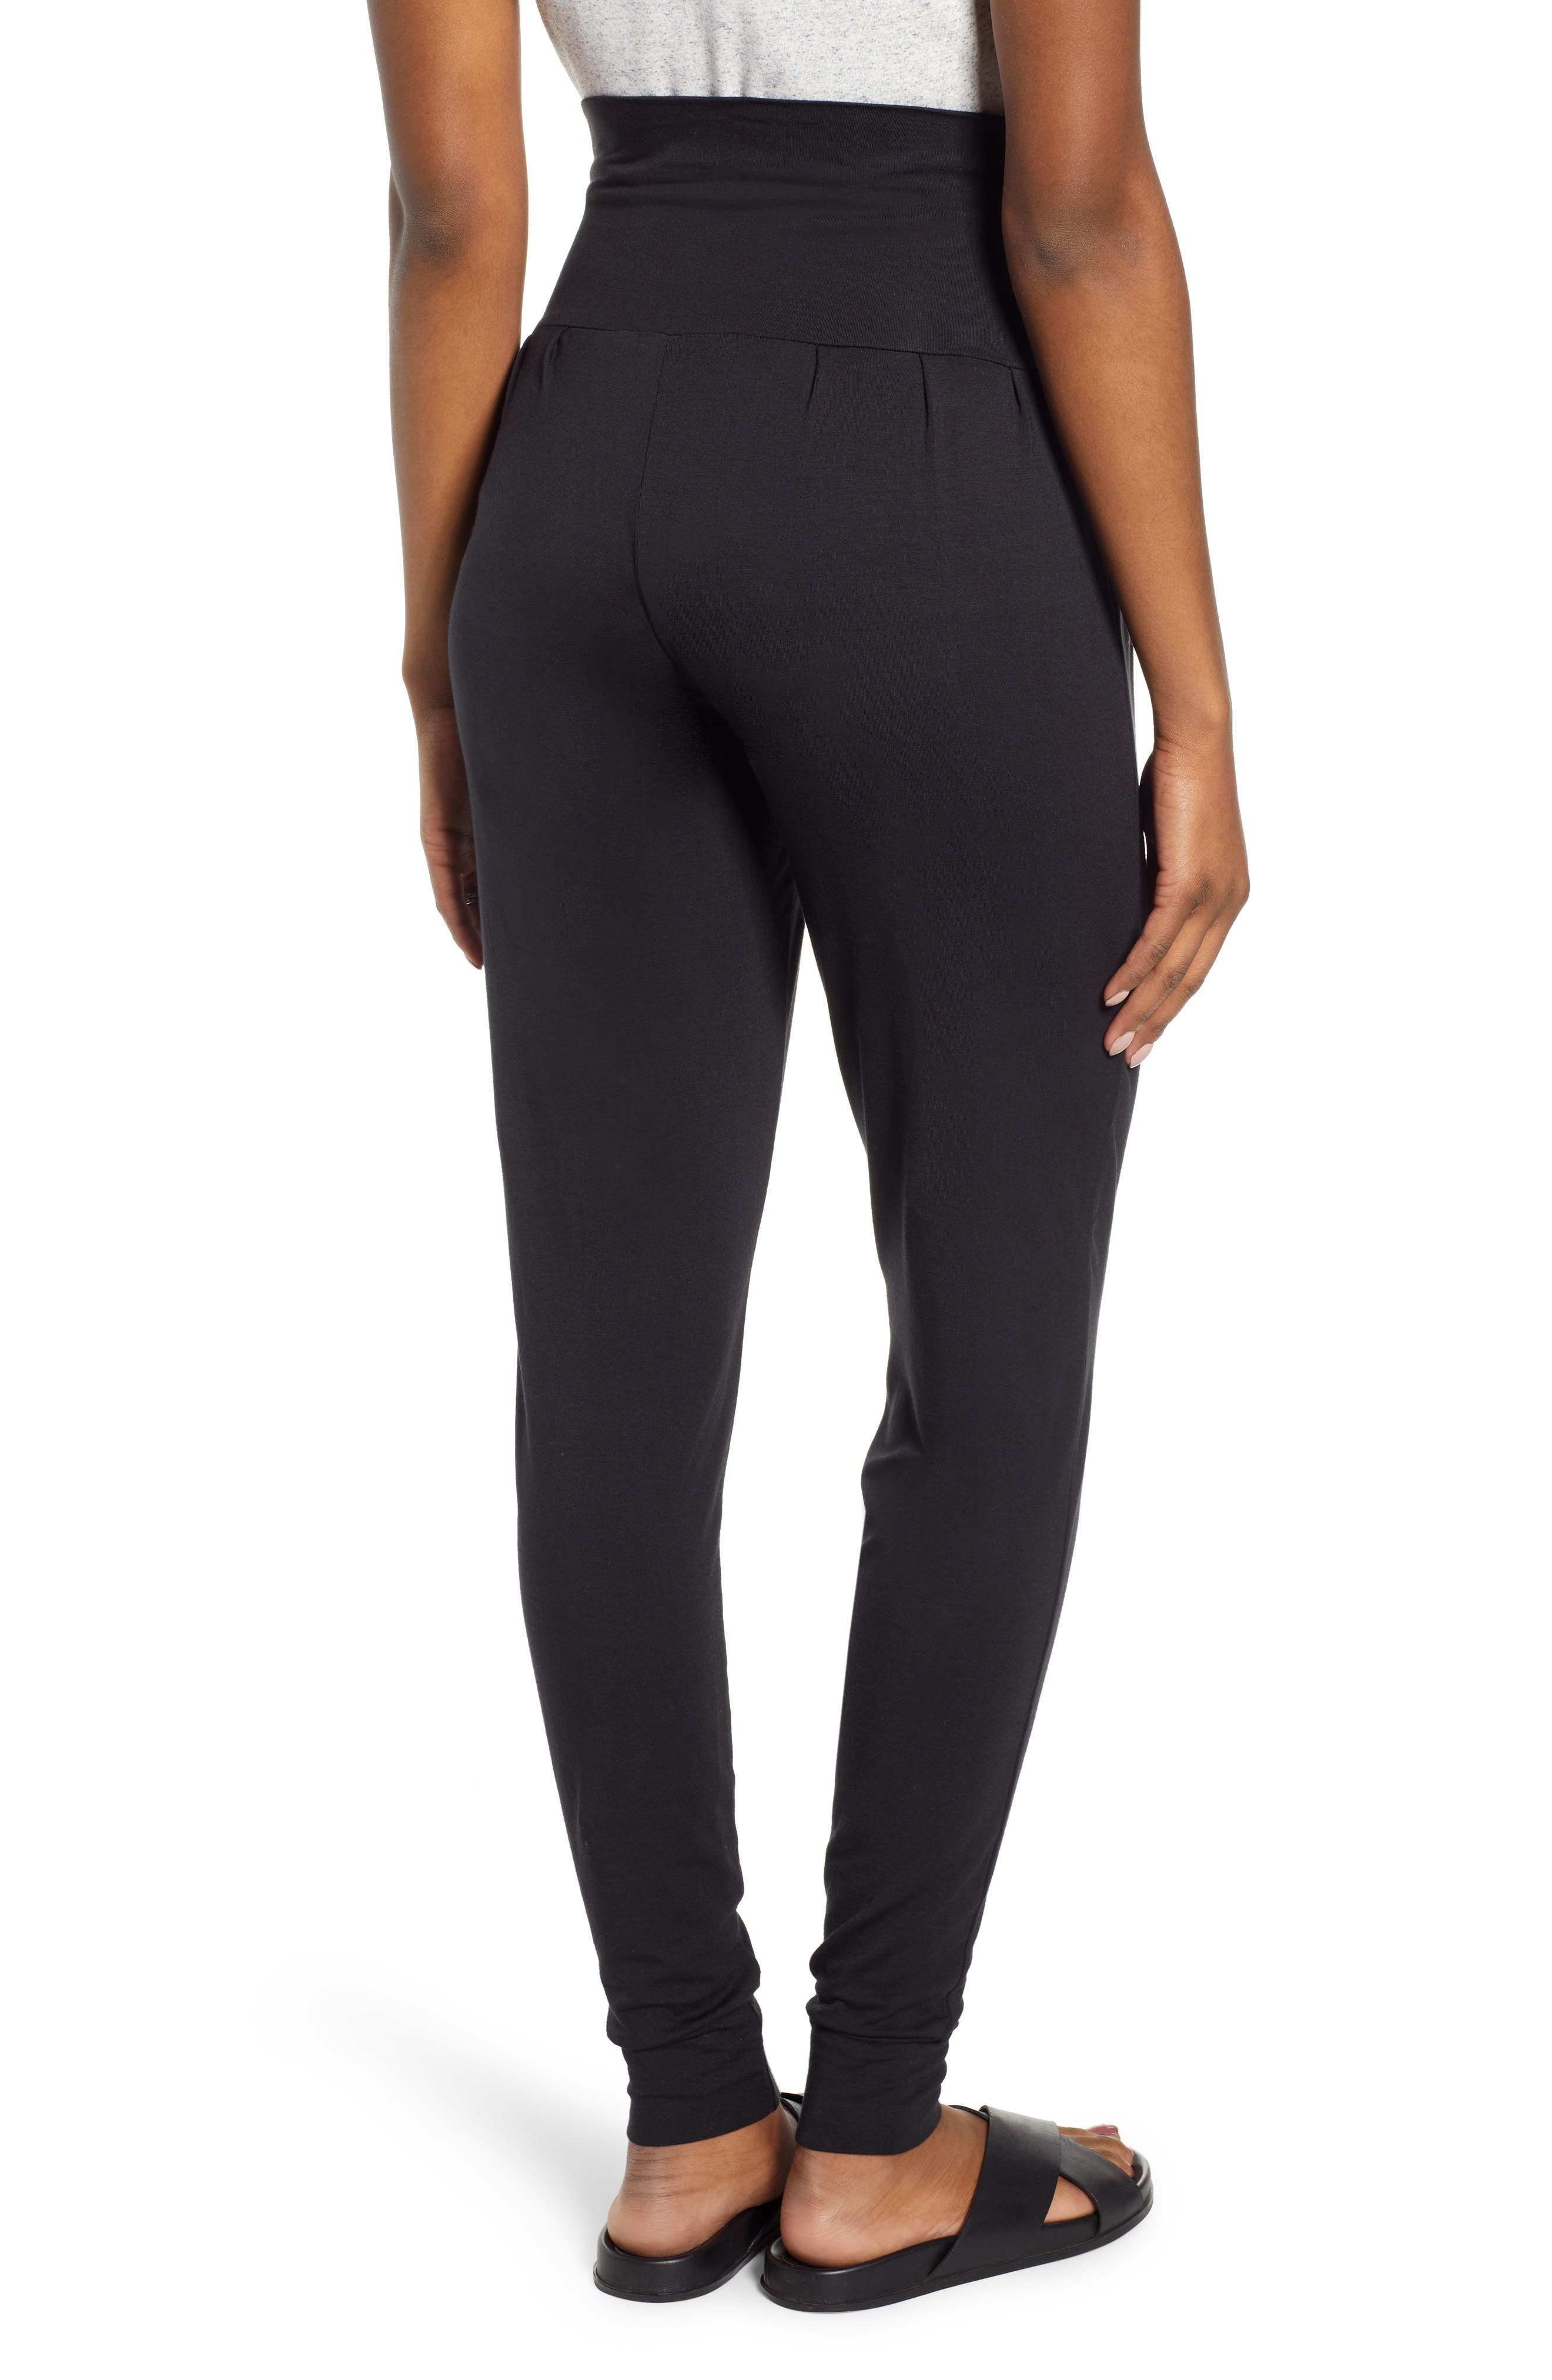 Women's Angel Maternity Tapered Maternity Lounge Pants